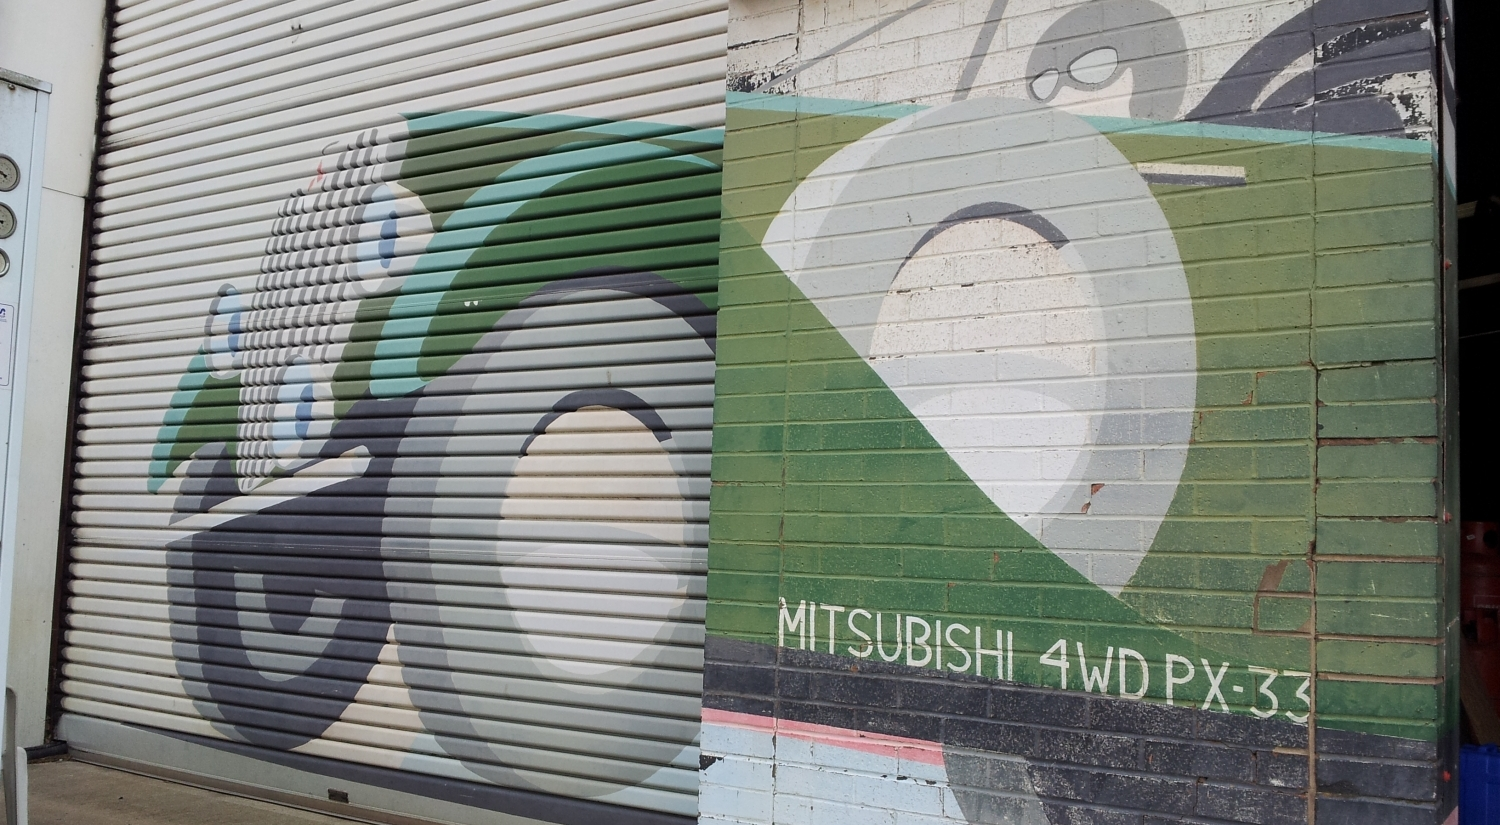 Mitsubishi PX33, lovingly remembered on the former Ralliart UK facility in Rugby, England.